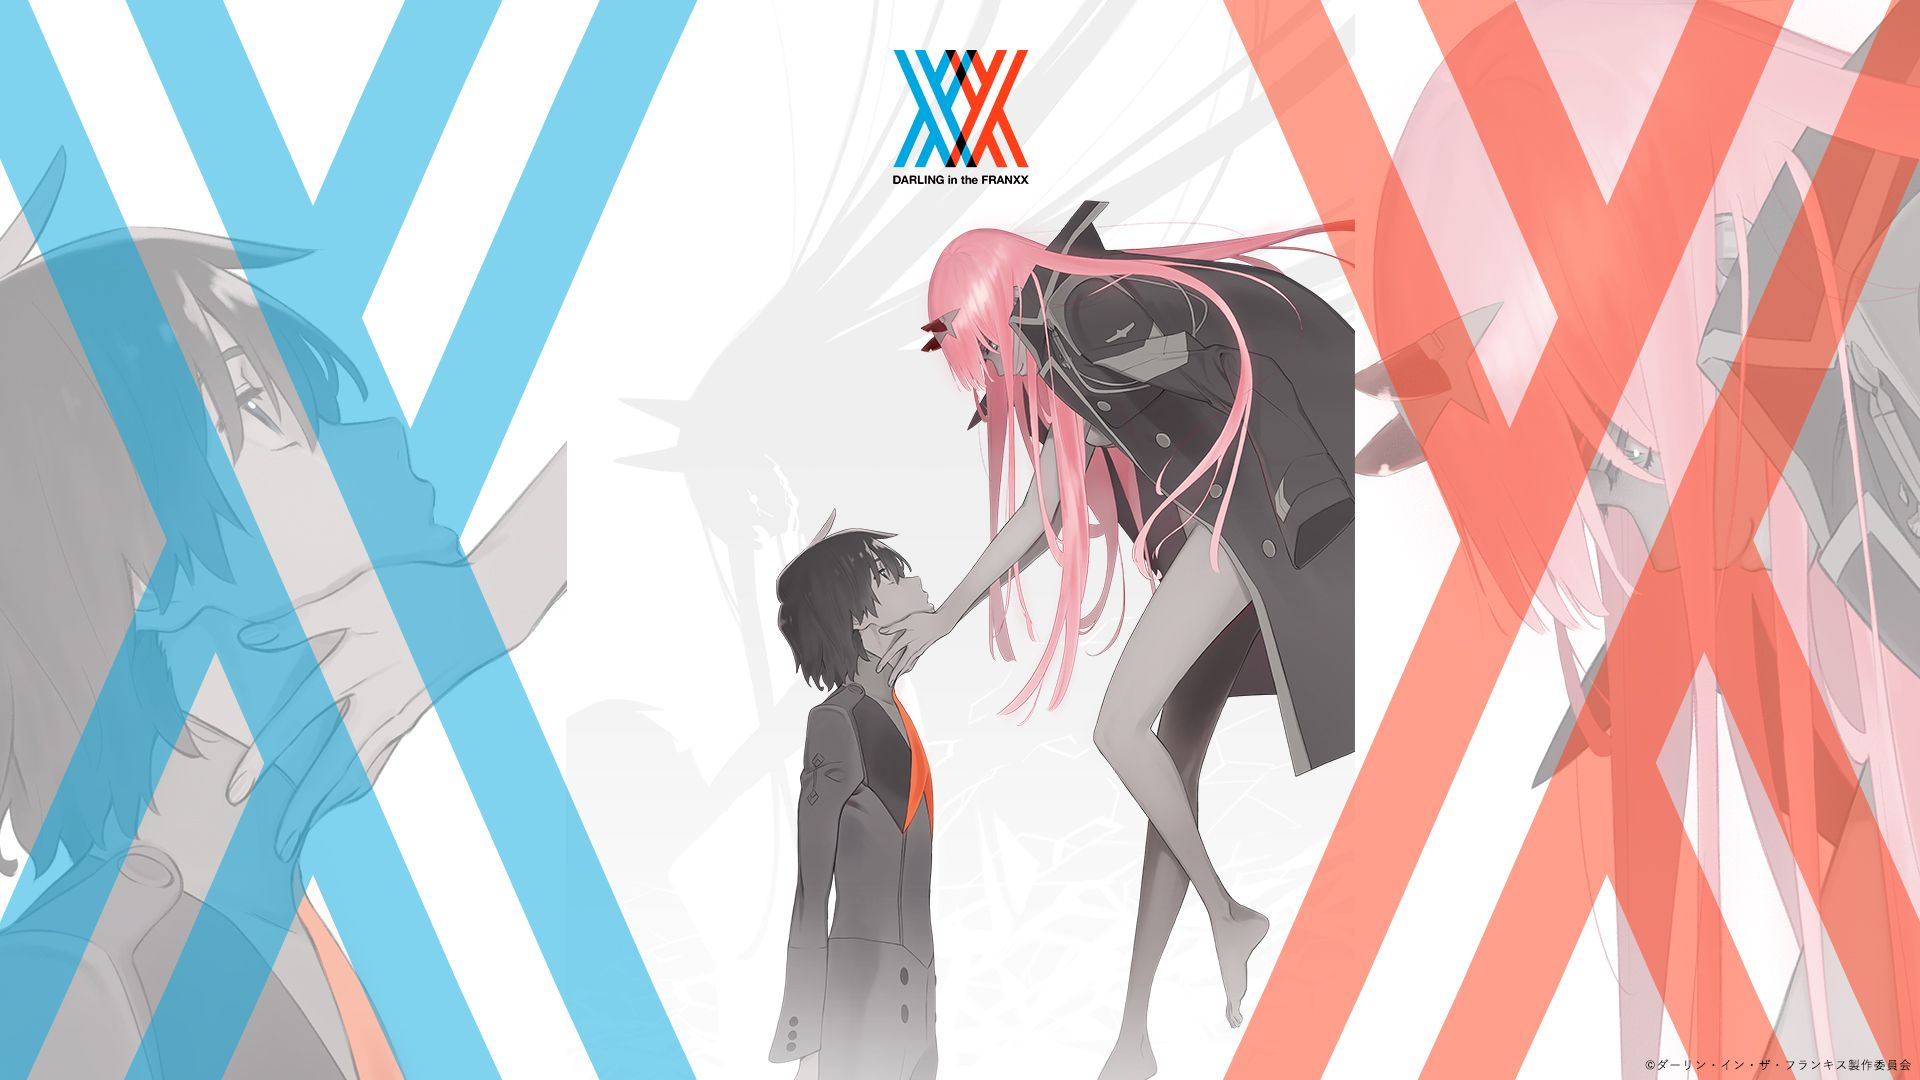 Download Darling In The Franxx Wallpaper Hd Backgrounds Download